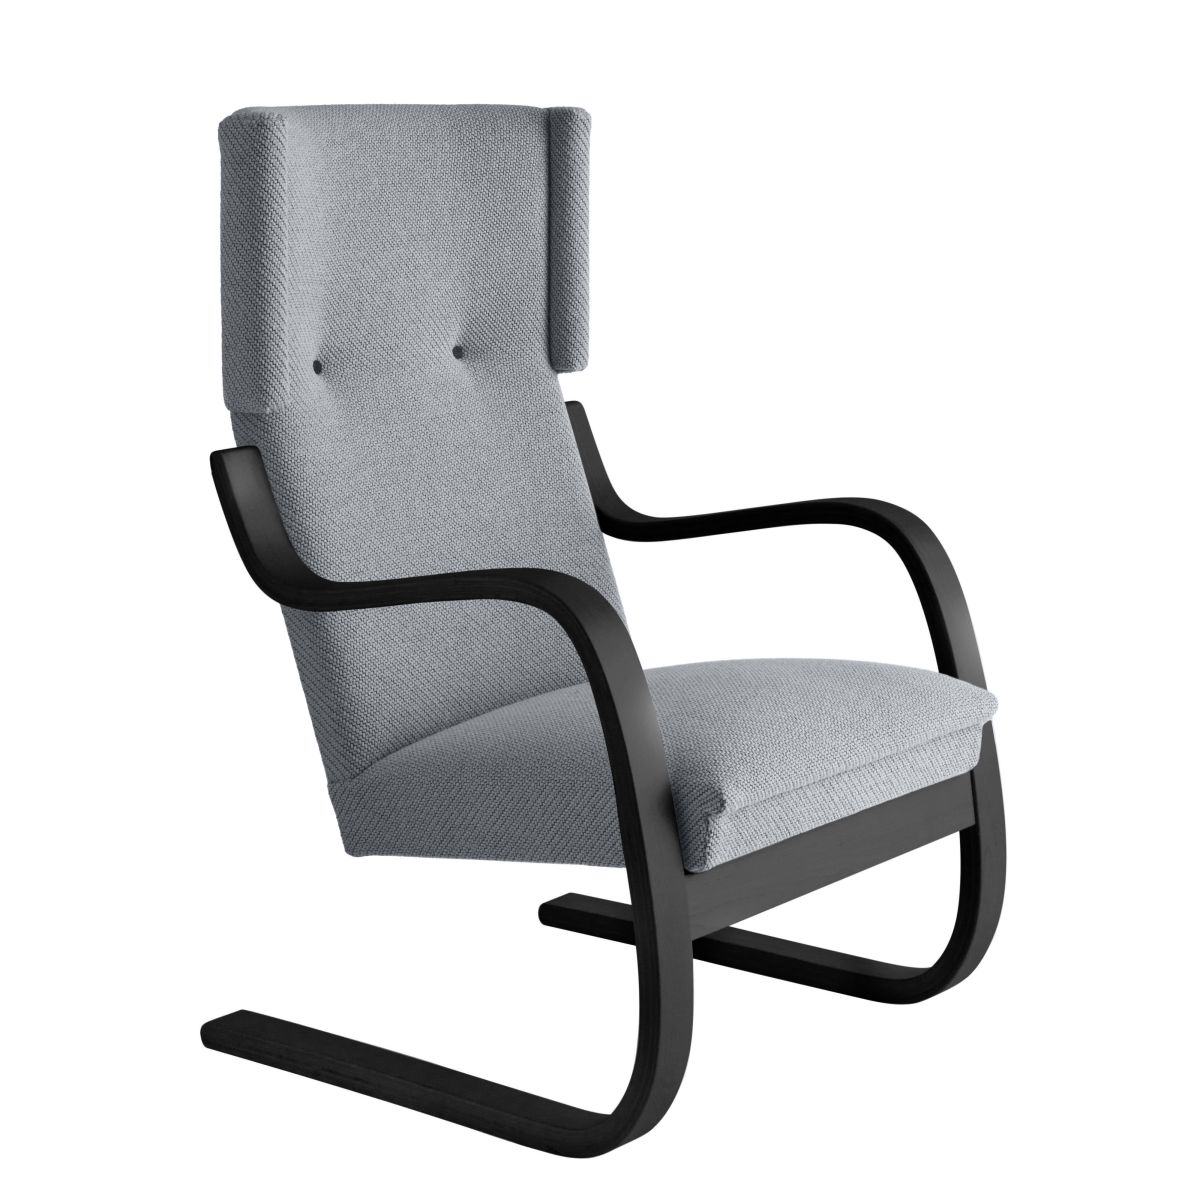 Armchair 401 Birch Black Laquer Sea Fabric Upholstery Artek Grey 2494501